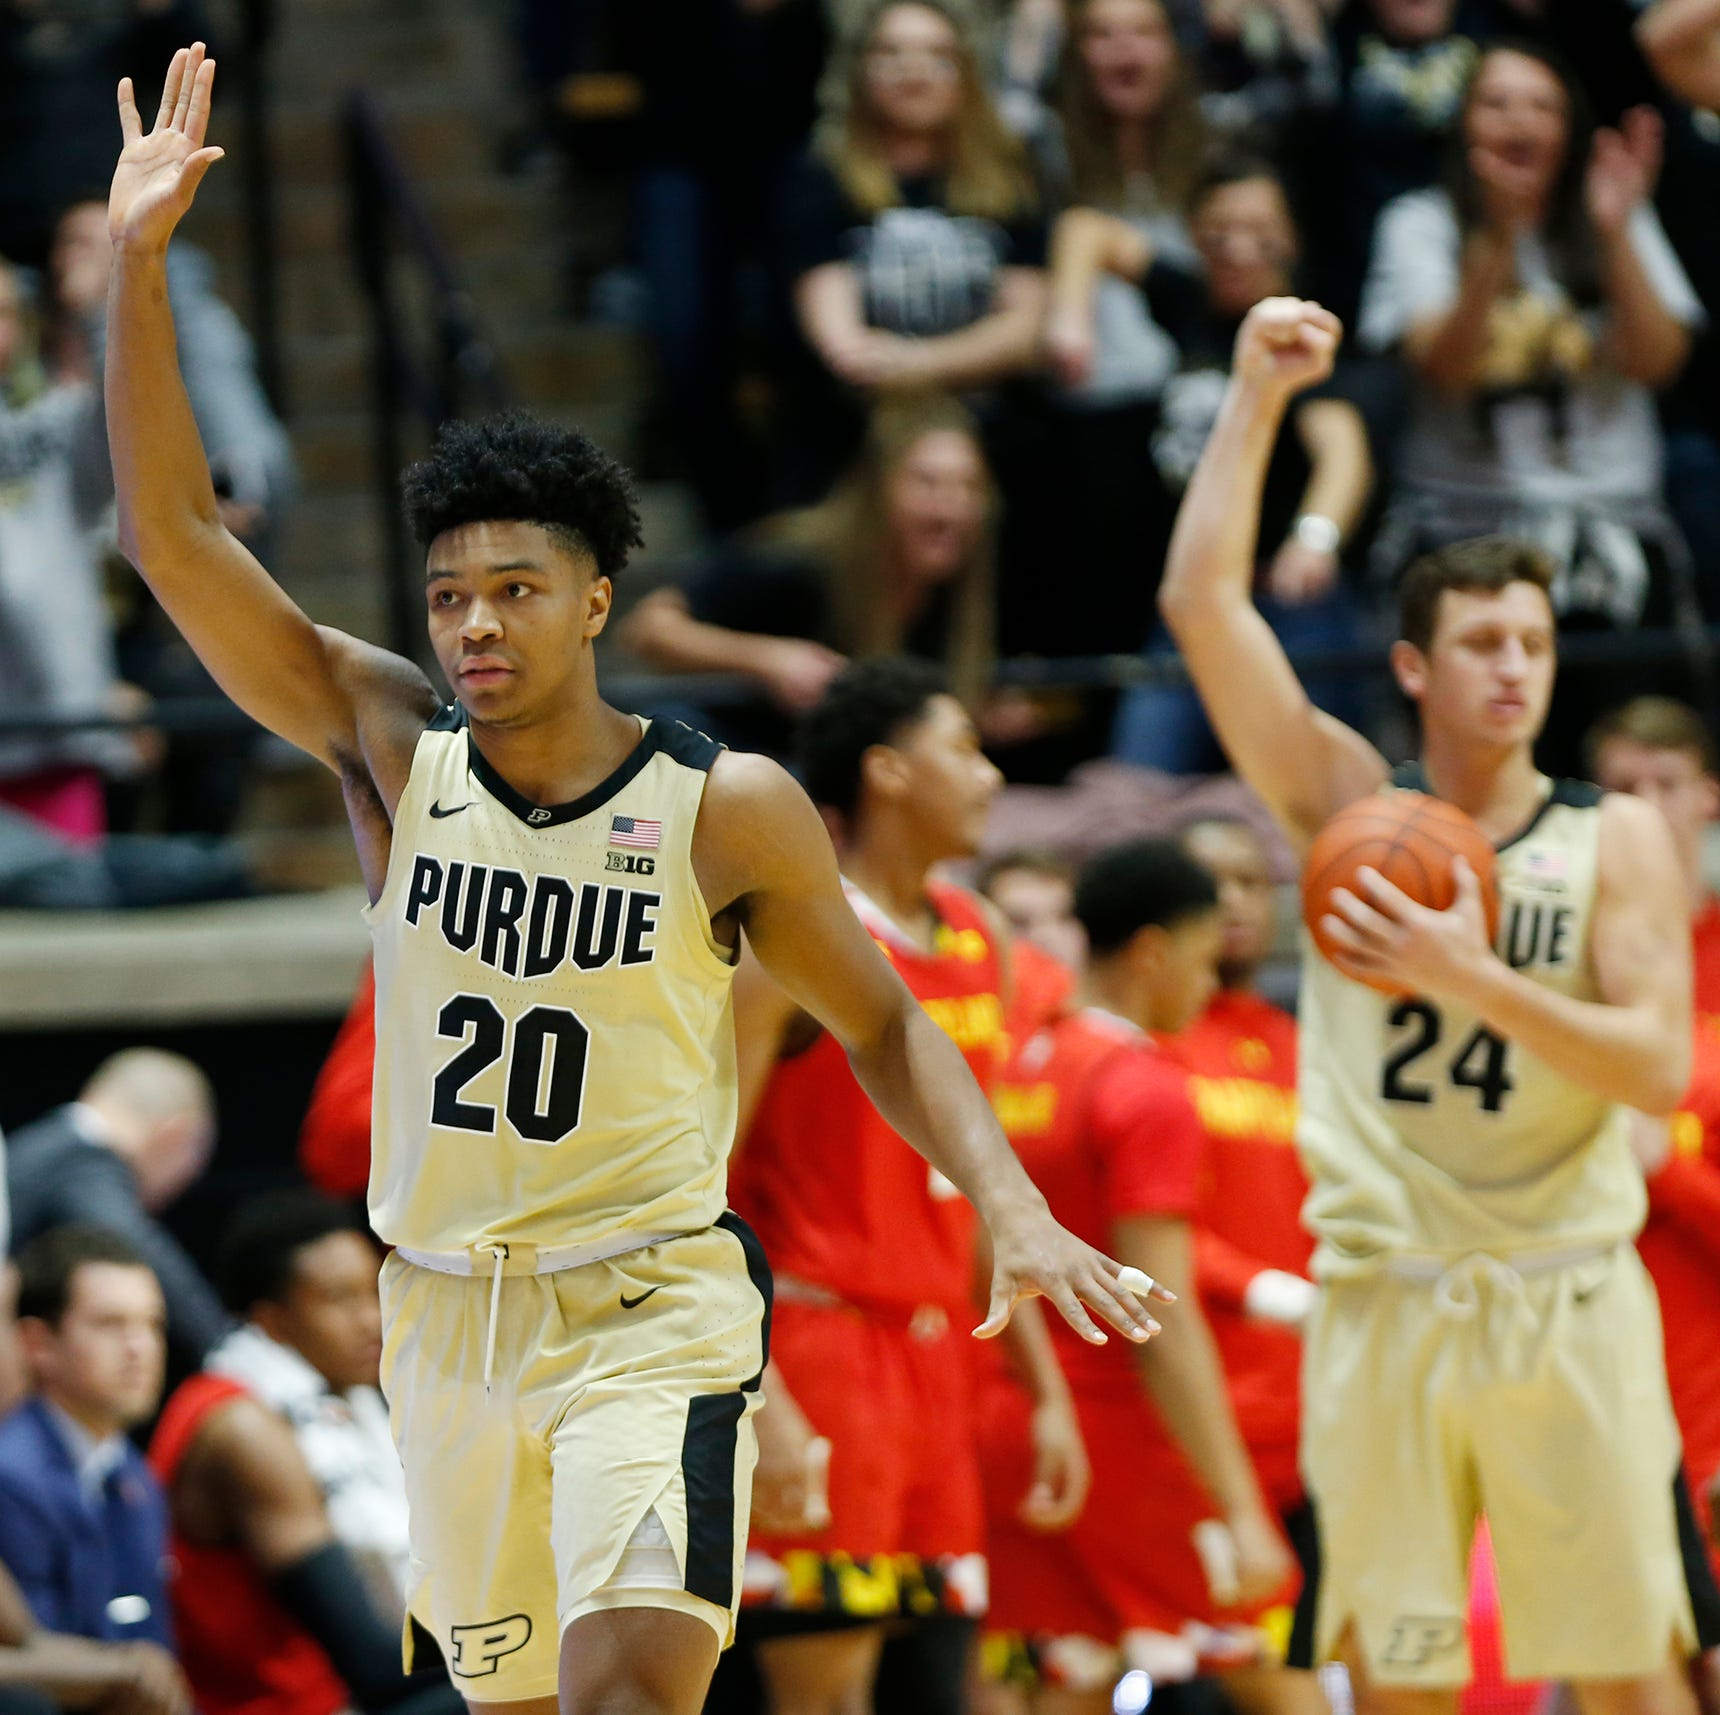 Purdue basketball's close road losses bring extra urgency to Notre Dame matchup